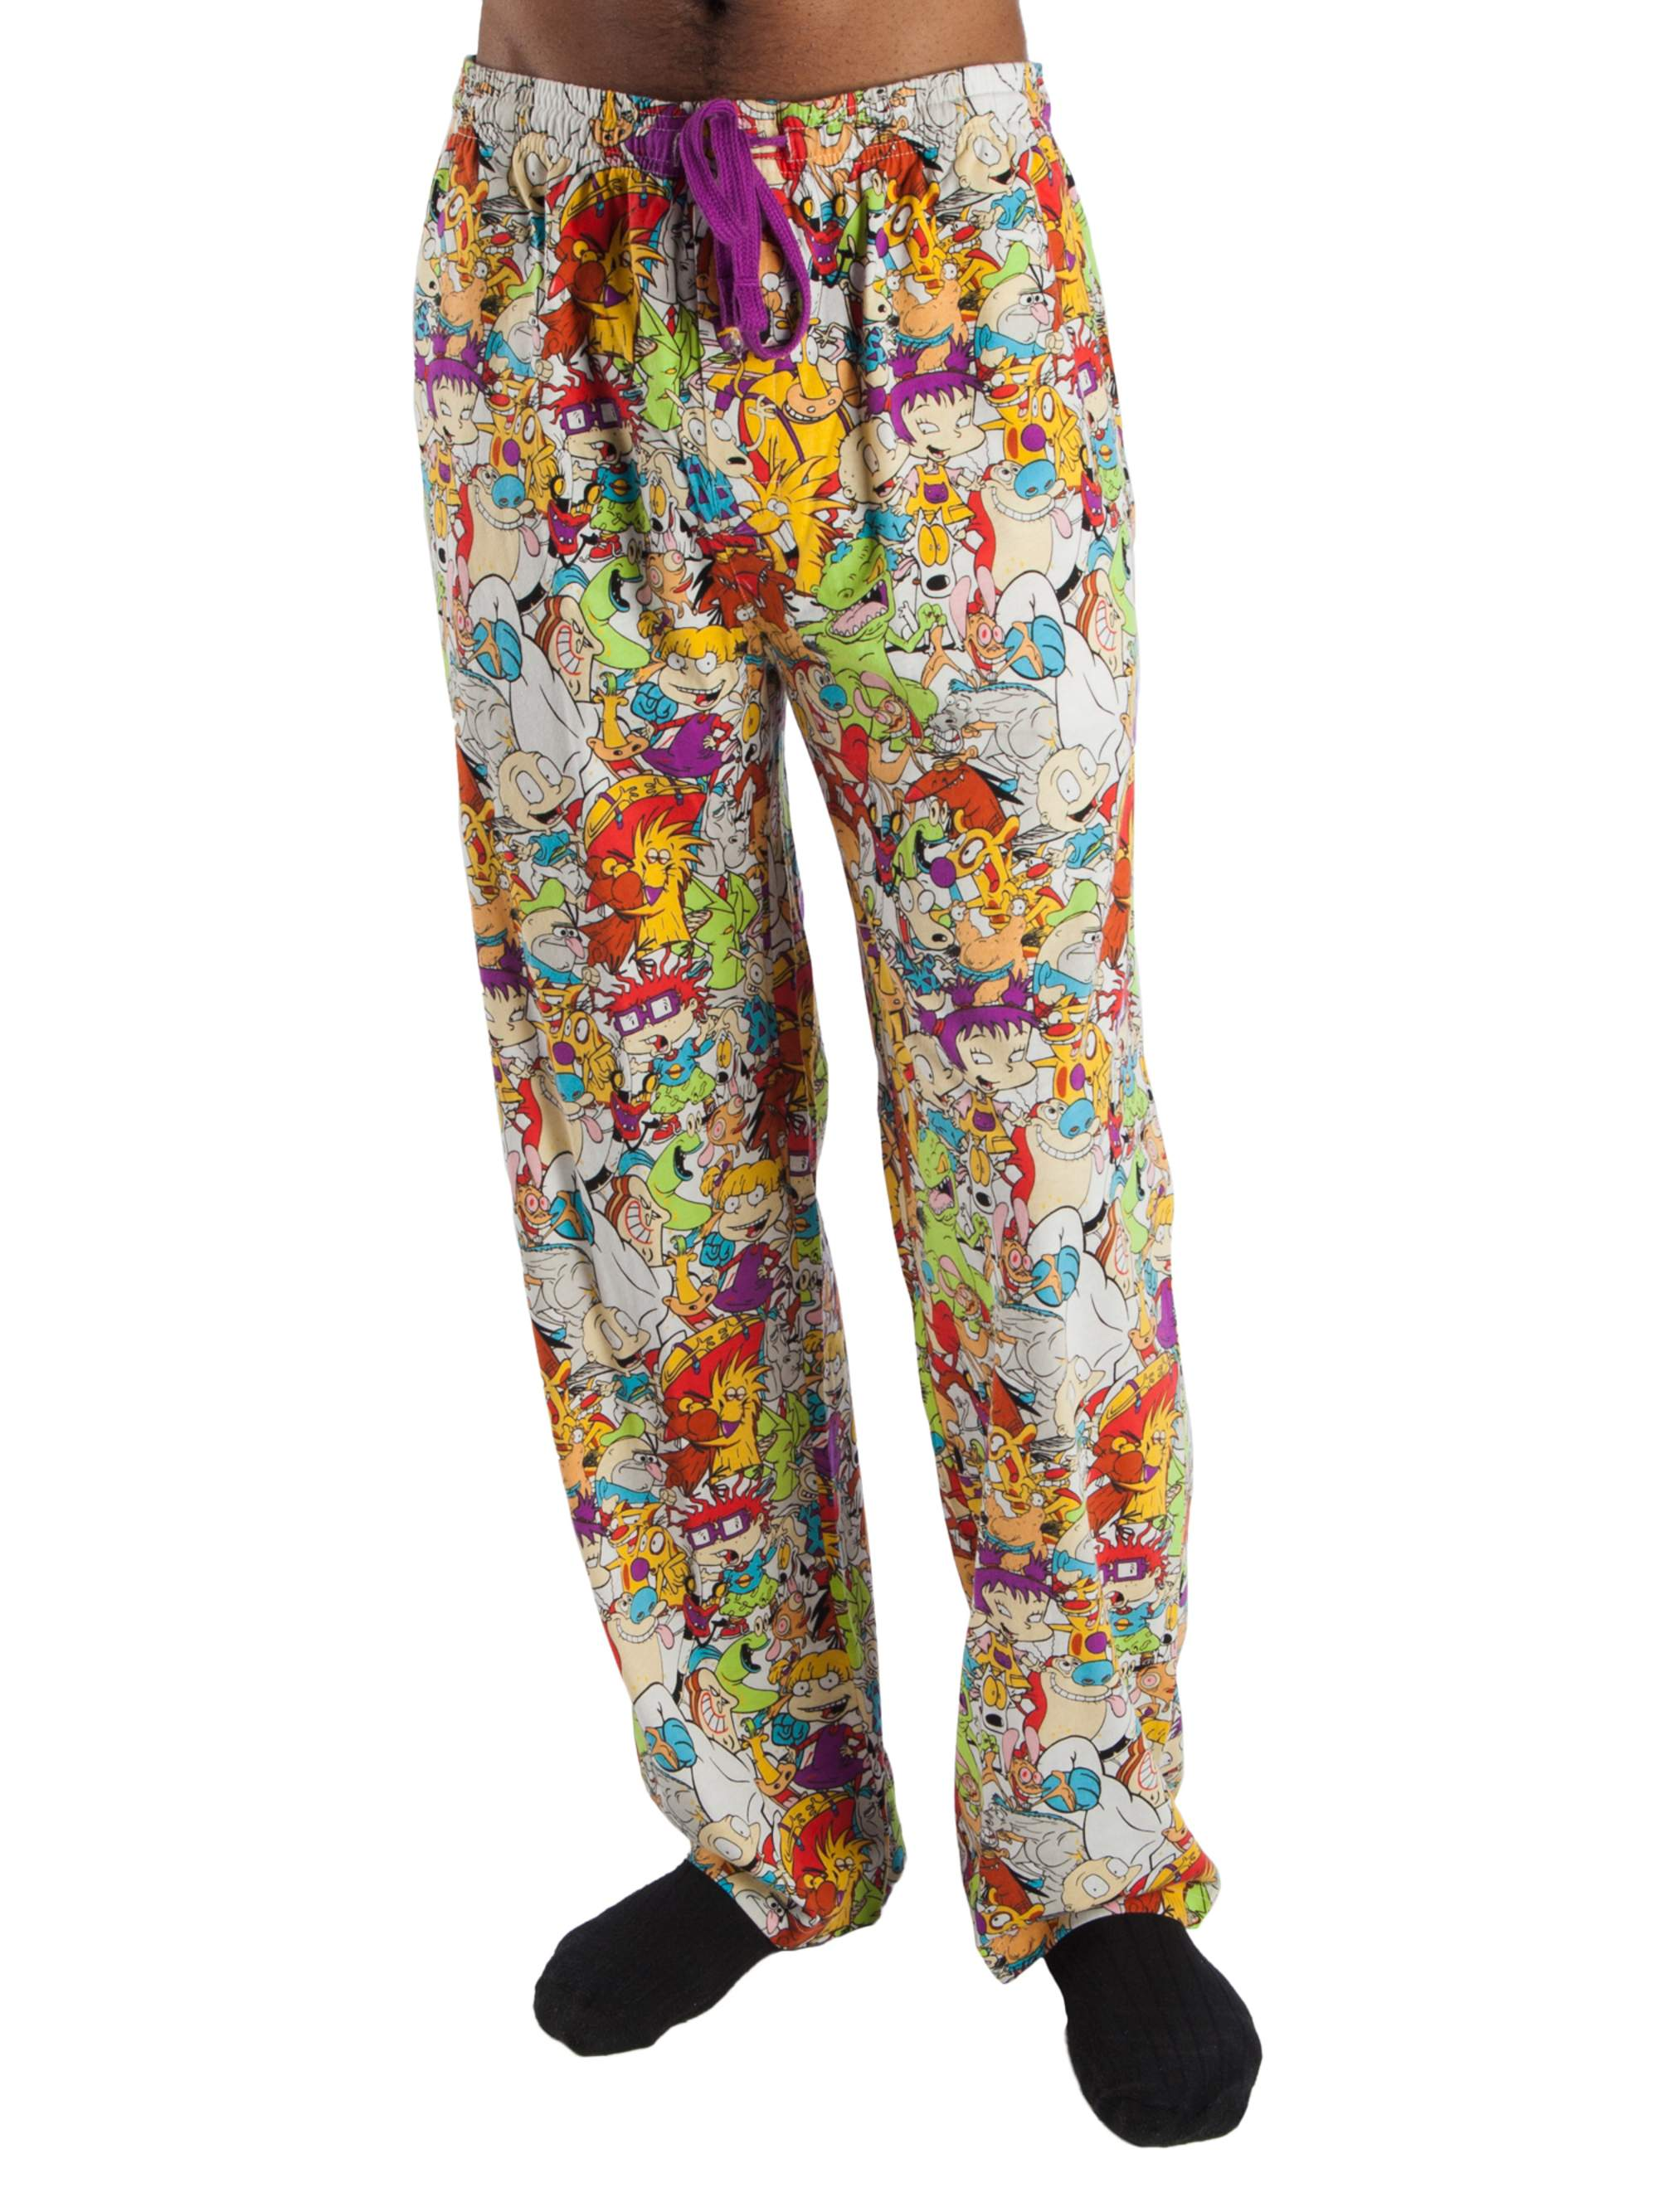 Men's 90's Cartoon Character All Over Print Cotton Jersey Pajama Lounge Pants